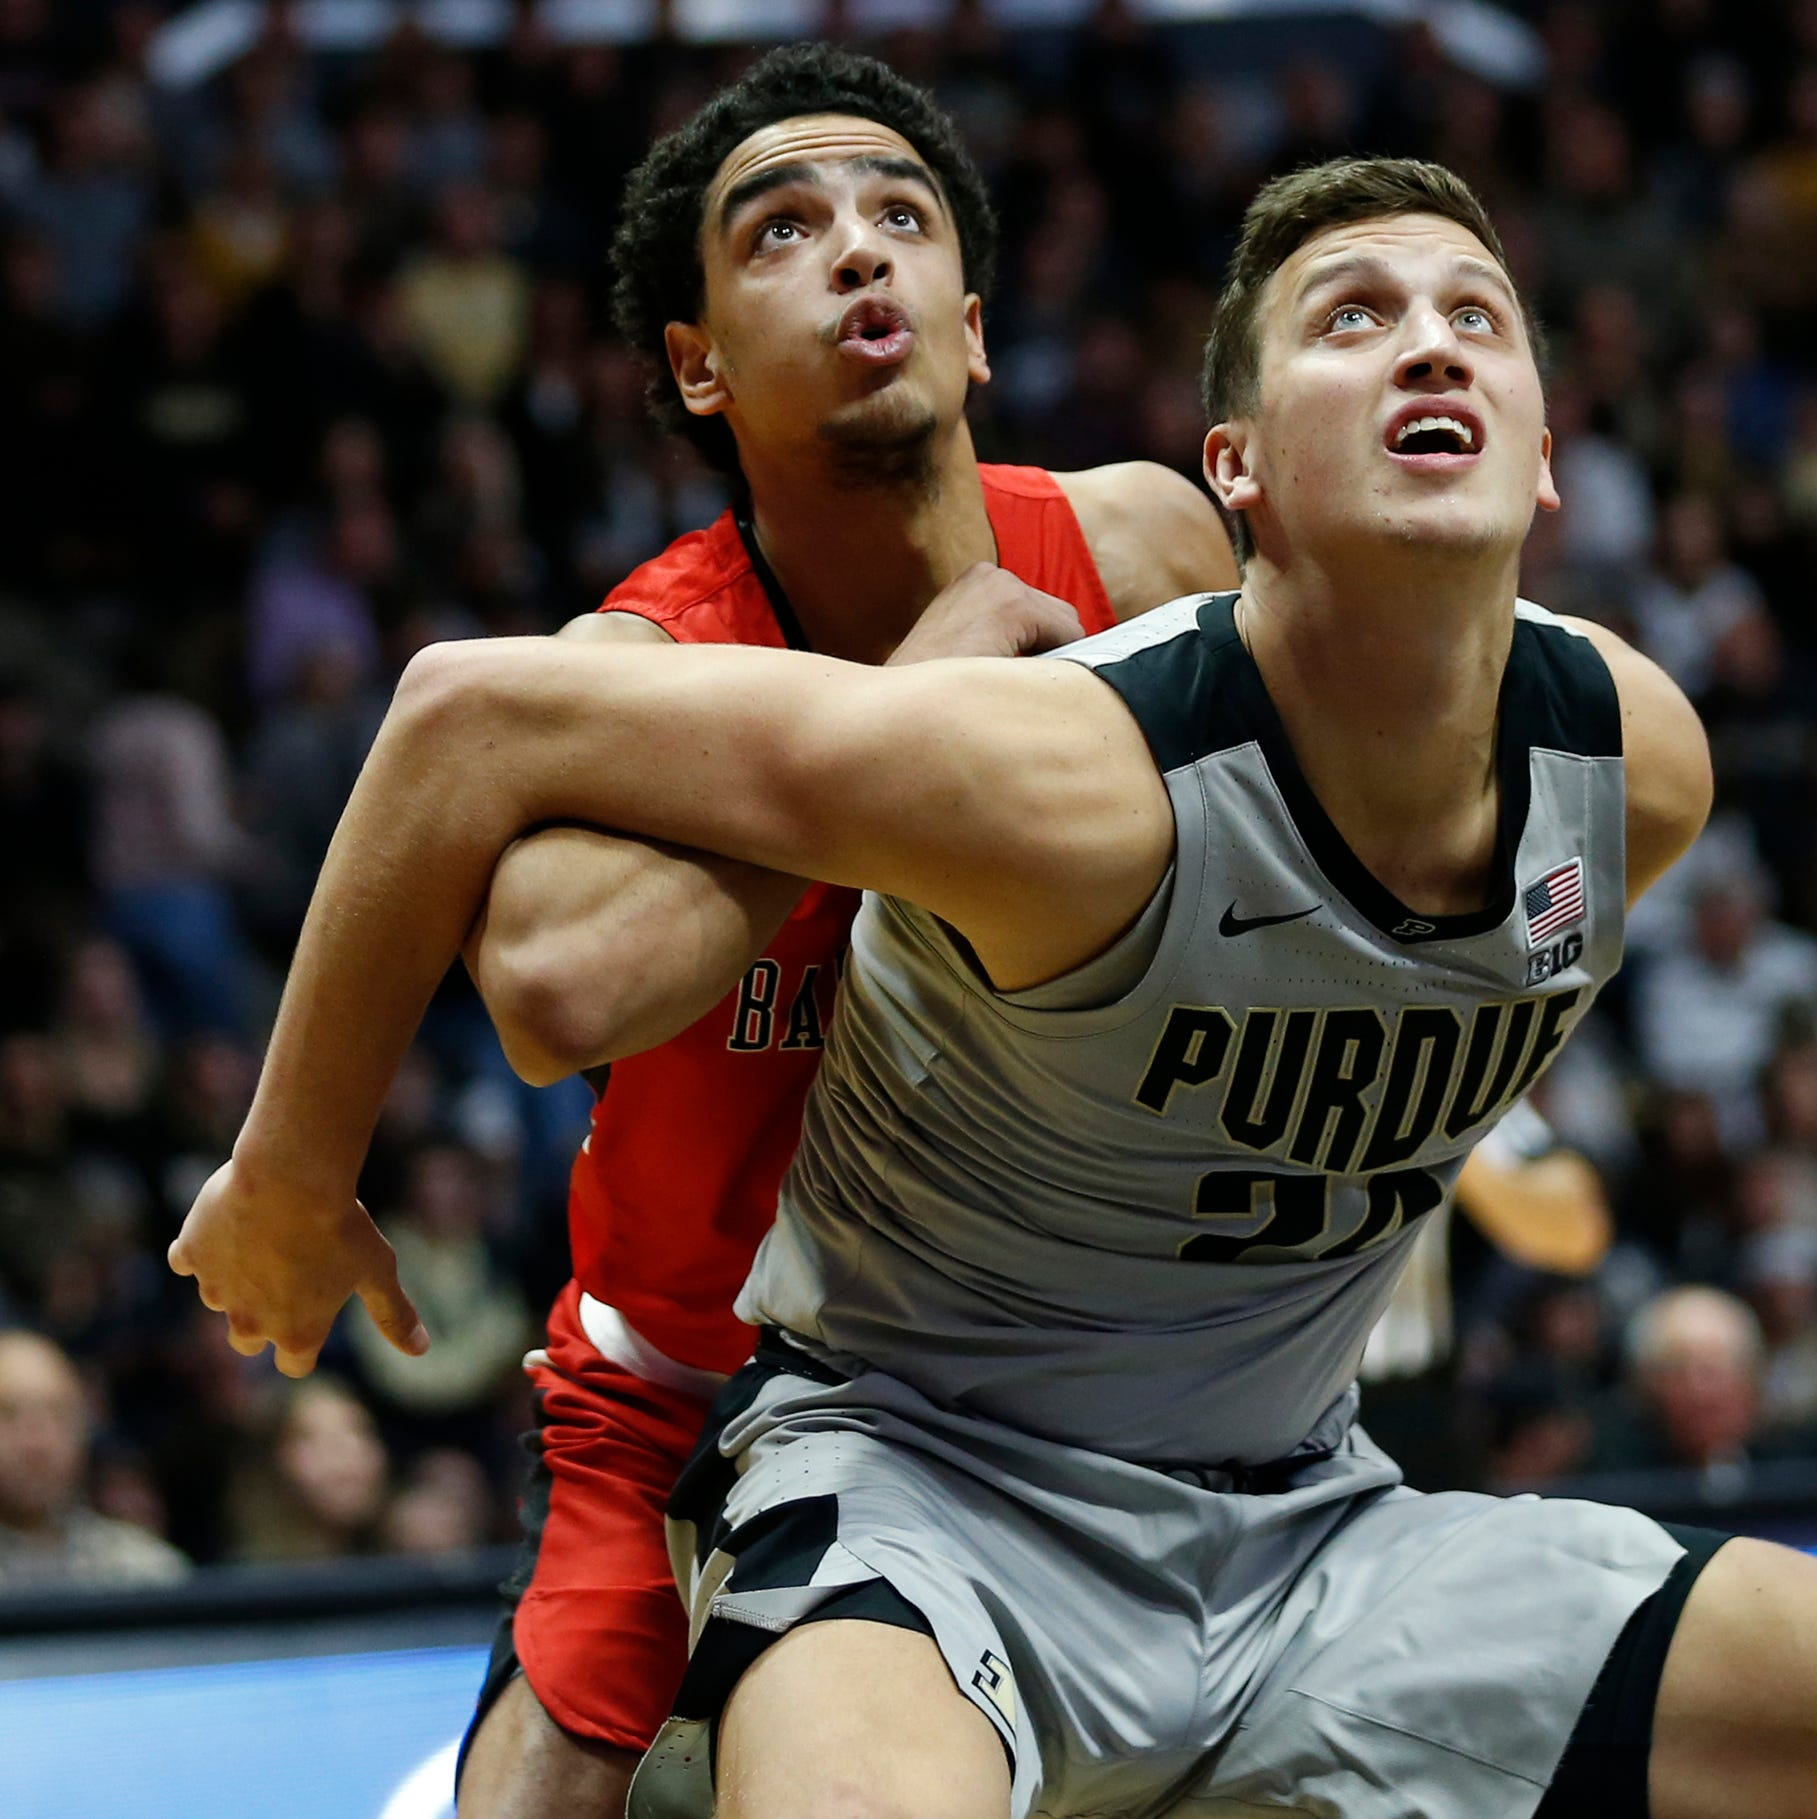 Purdue basketball quickly establishing dominant identity on the offensive boards